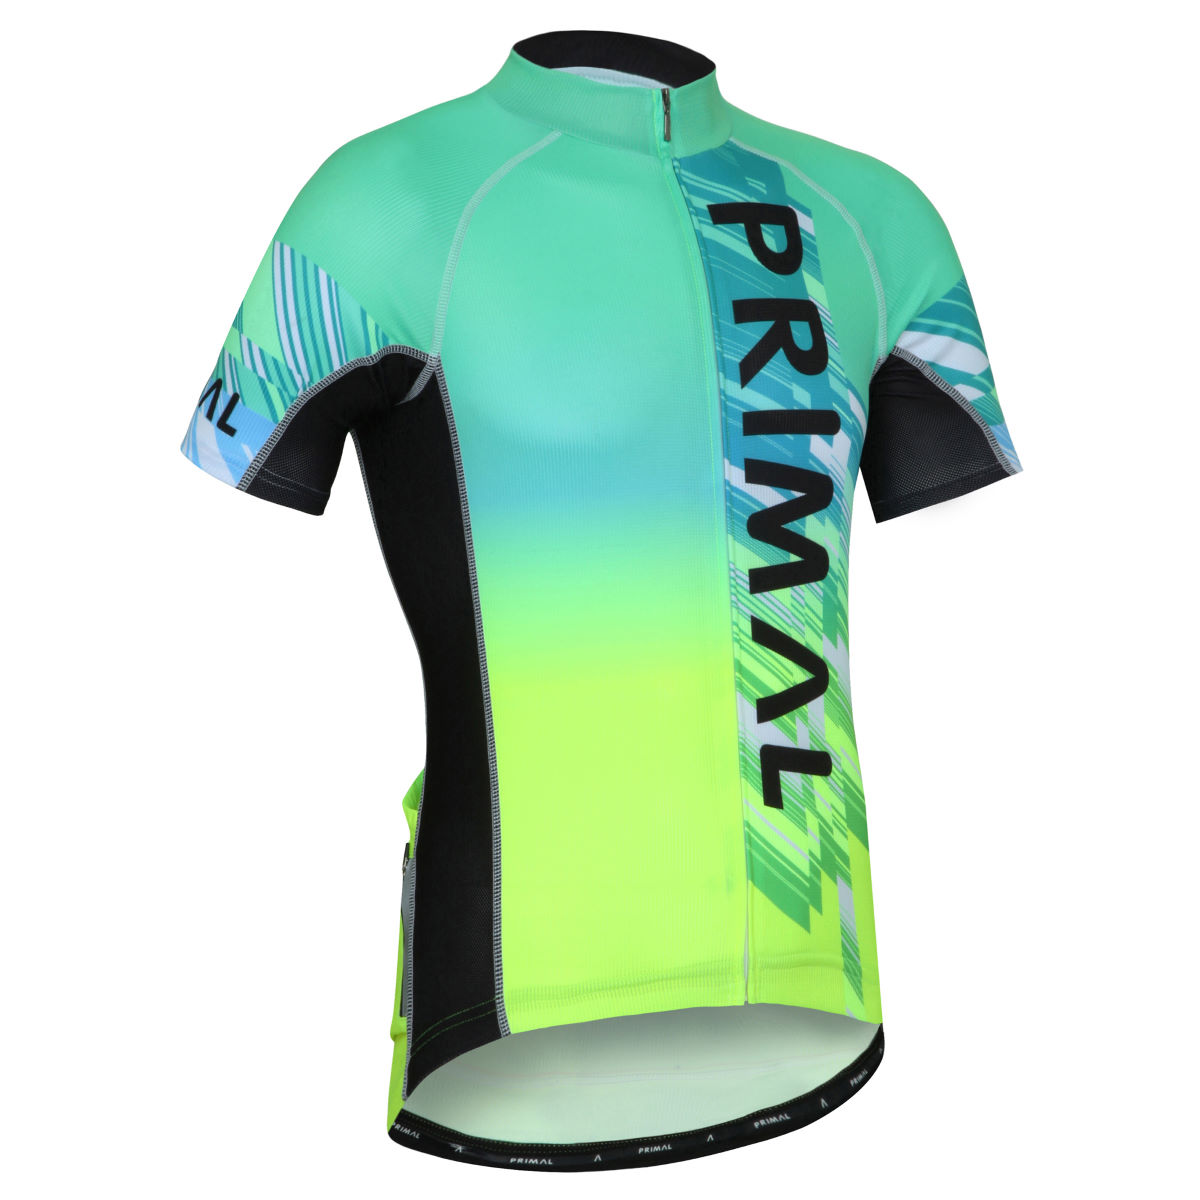 Maillot Primal Mai Tai Evo - 2XL Multi Coloured